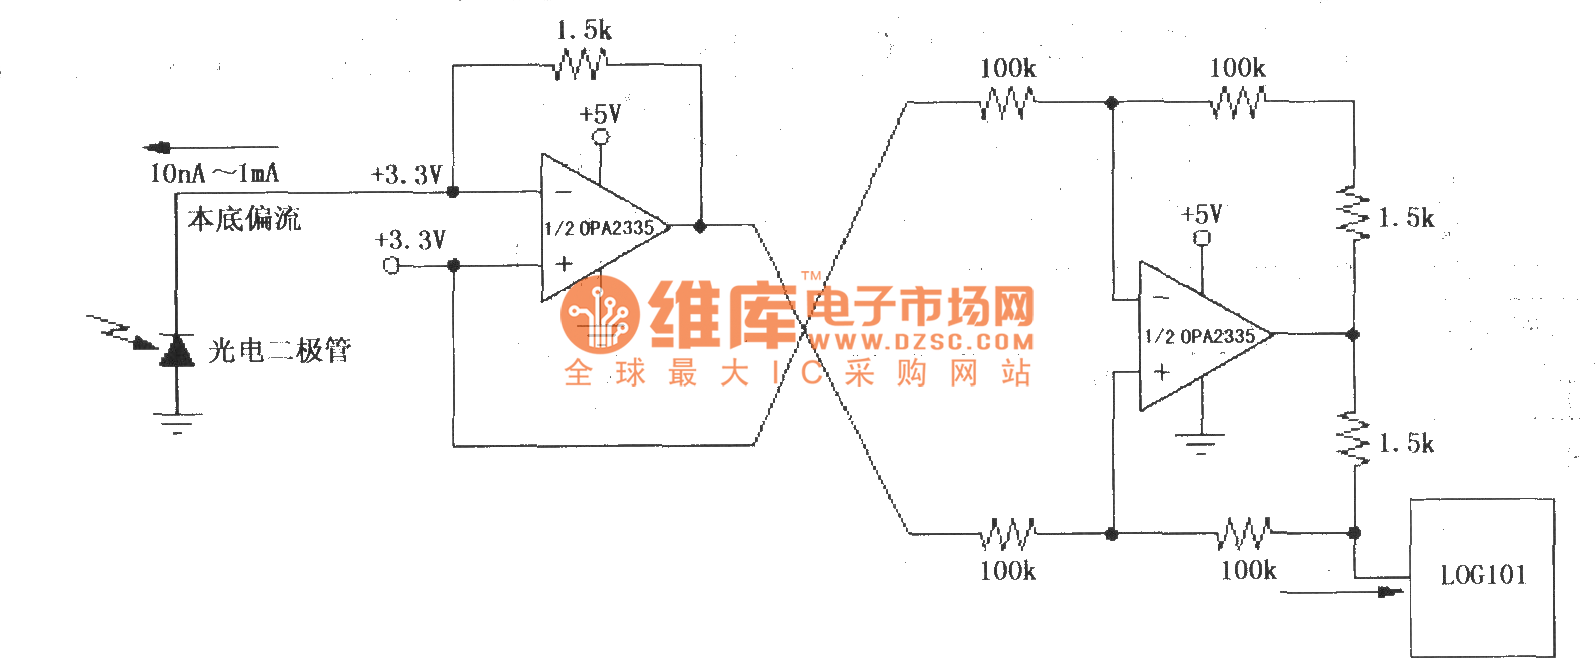 Precision Current Inverter Source Circuit 2 Composed Of The Opamp Log101 104 And Op Amp